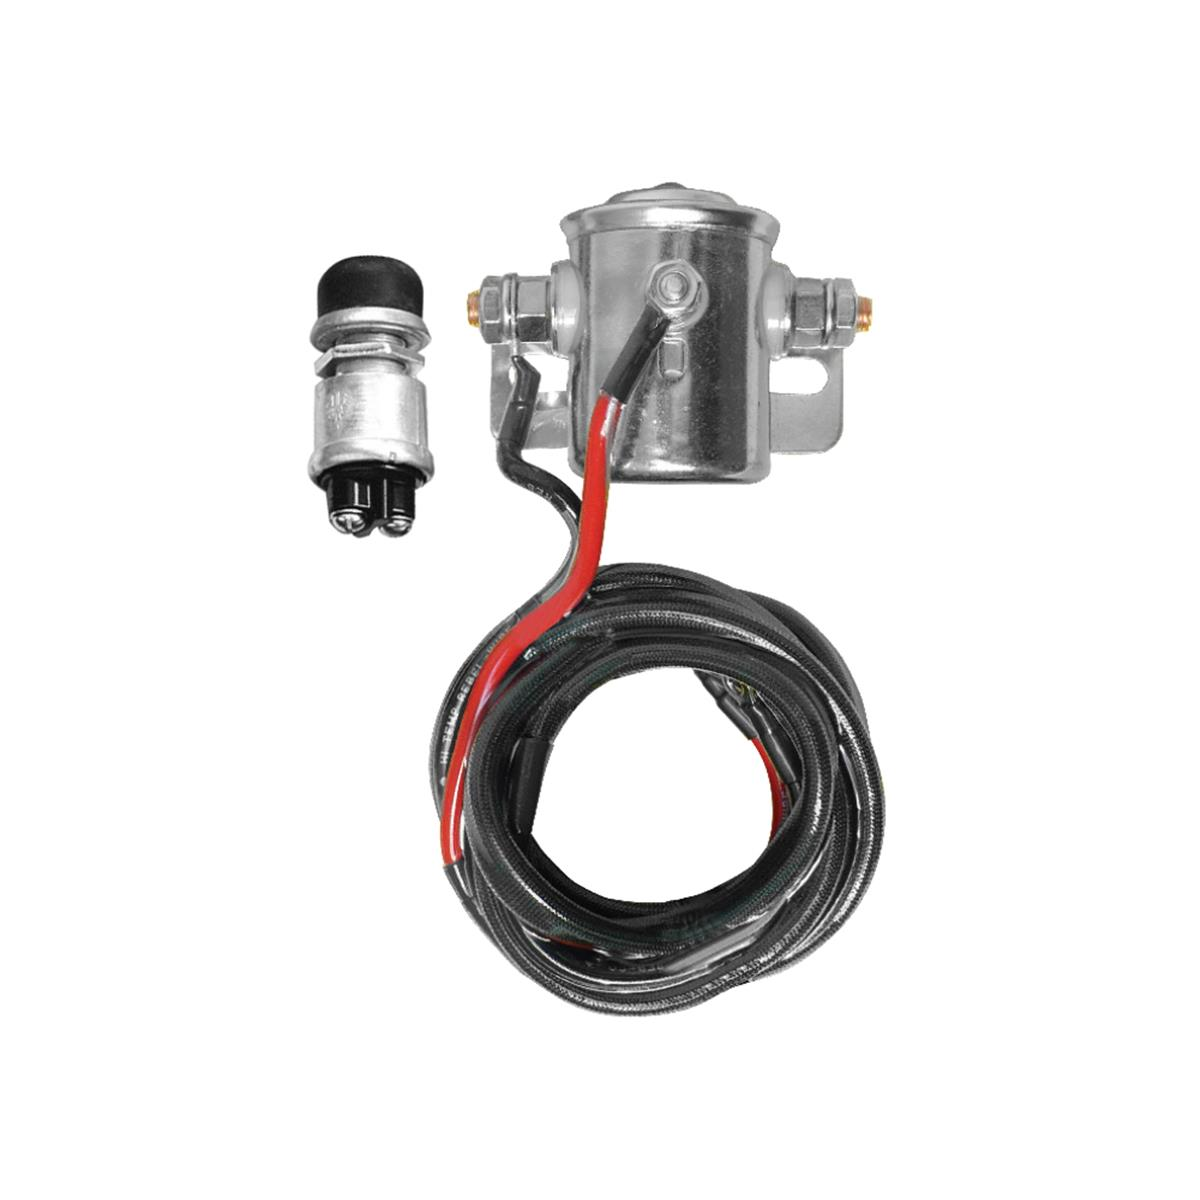 HD Starter Solenoid Kit with Firewall Starter Button